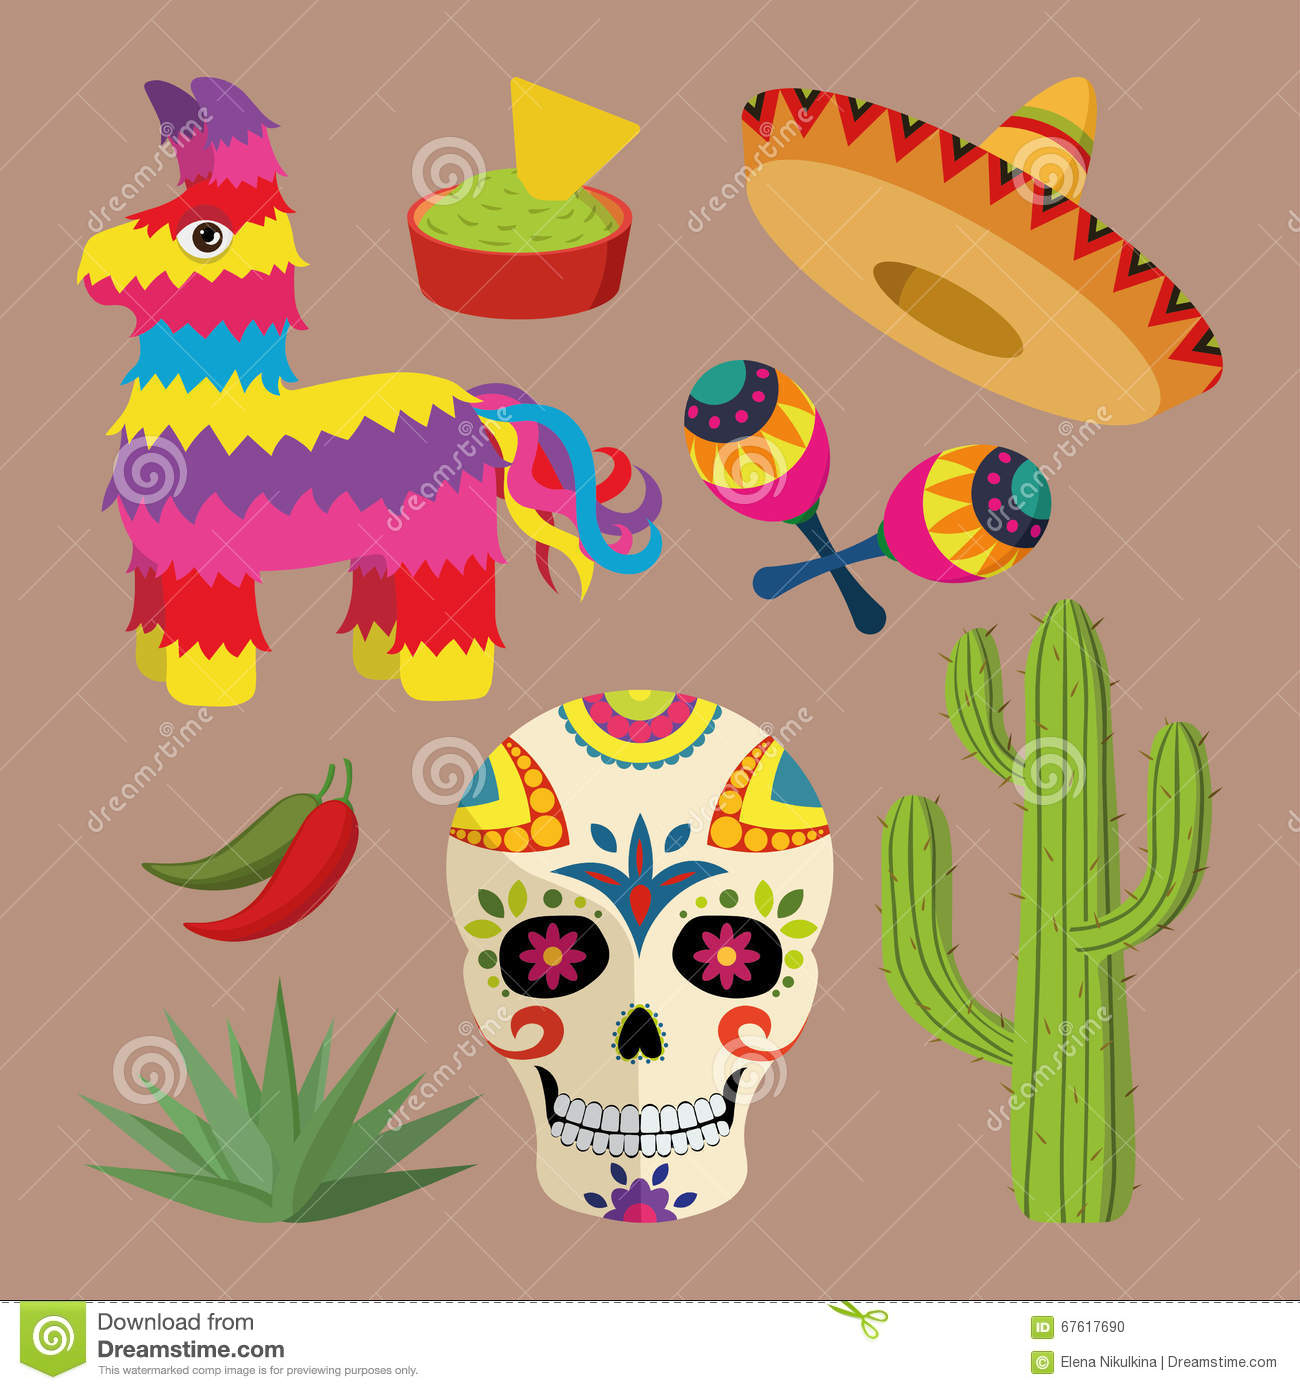 pinata stock illustrations u2013 666 pinata stock illustrations